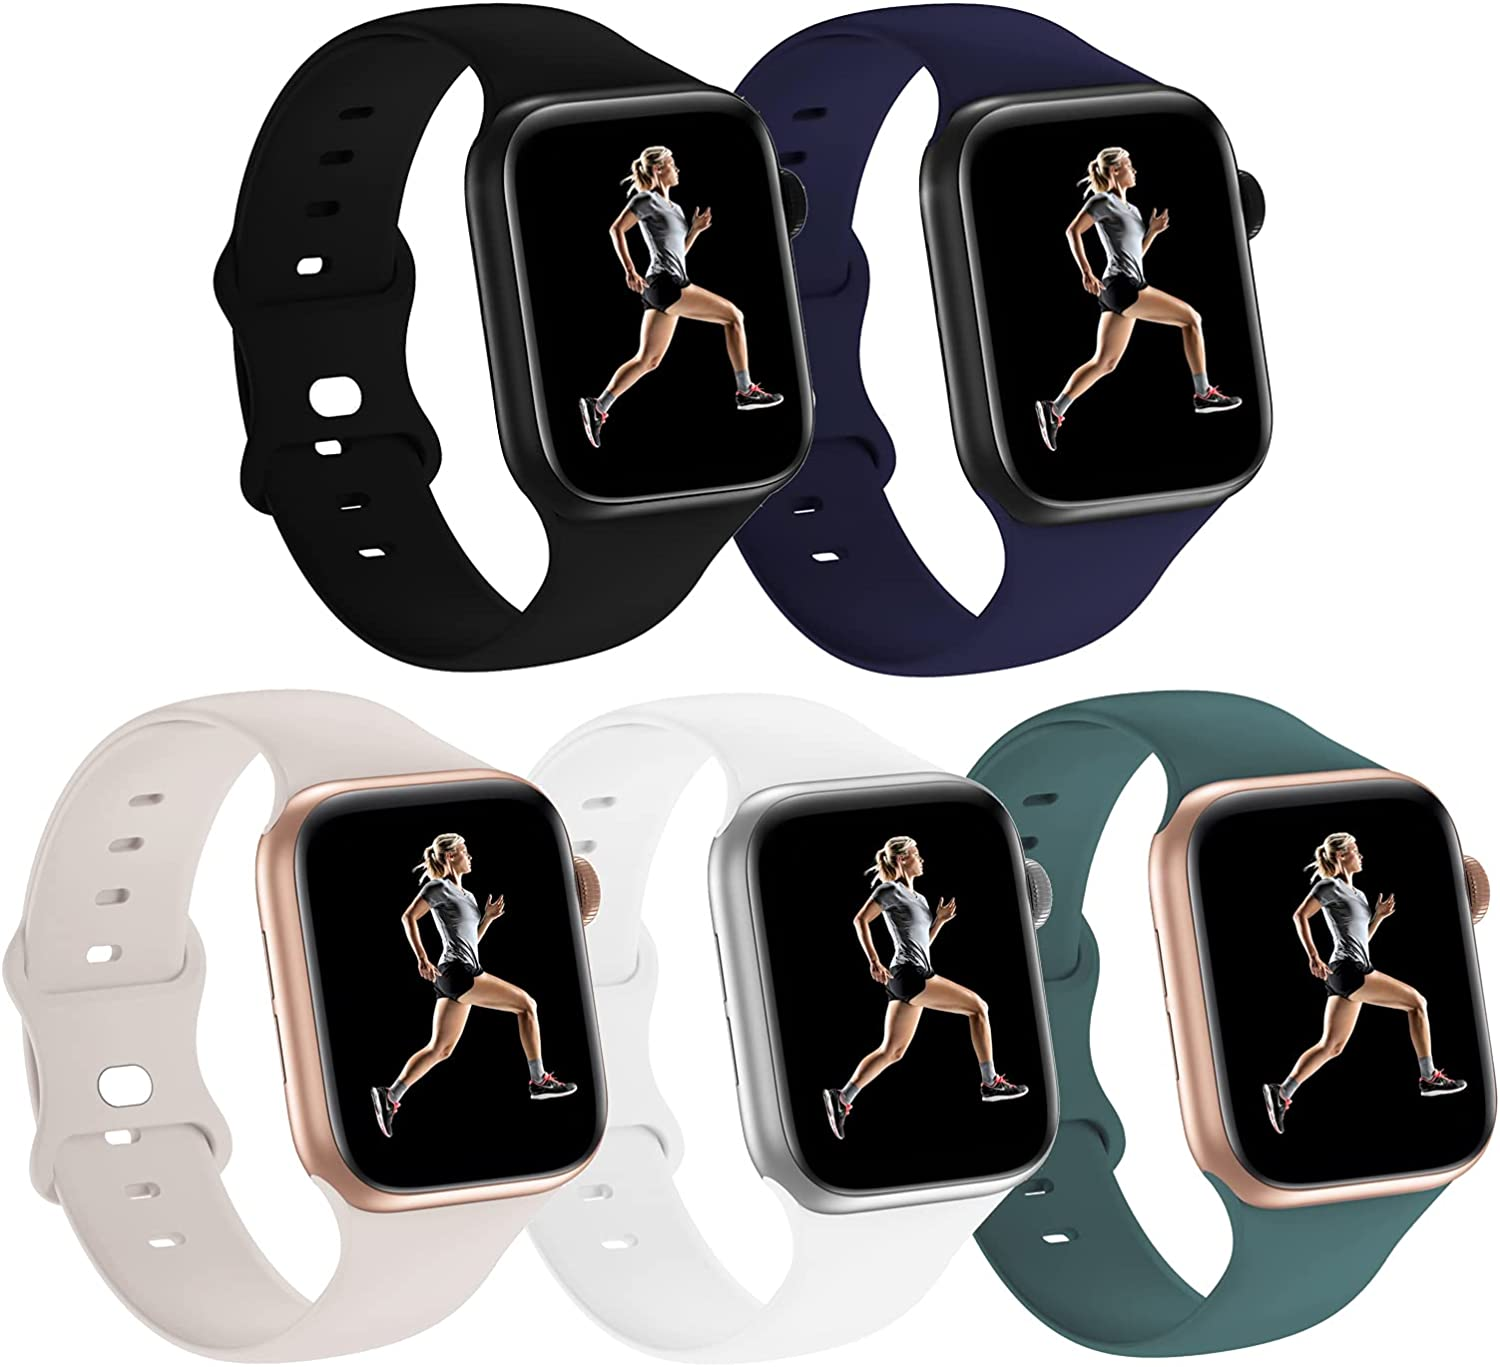 5 Pack Sport Bands Compatible with Apple Watch Band 38mm 40mm 42mm 44mm Women Men, Silicone wristbands strap Replacment for iwatch SE/Series 6/5/4/3/2/1